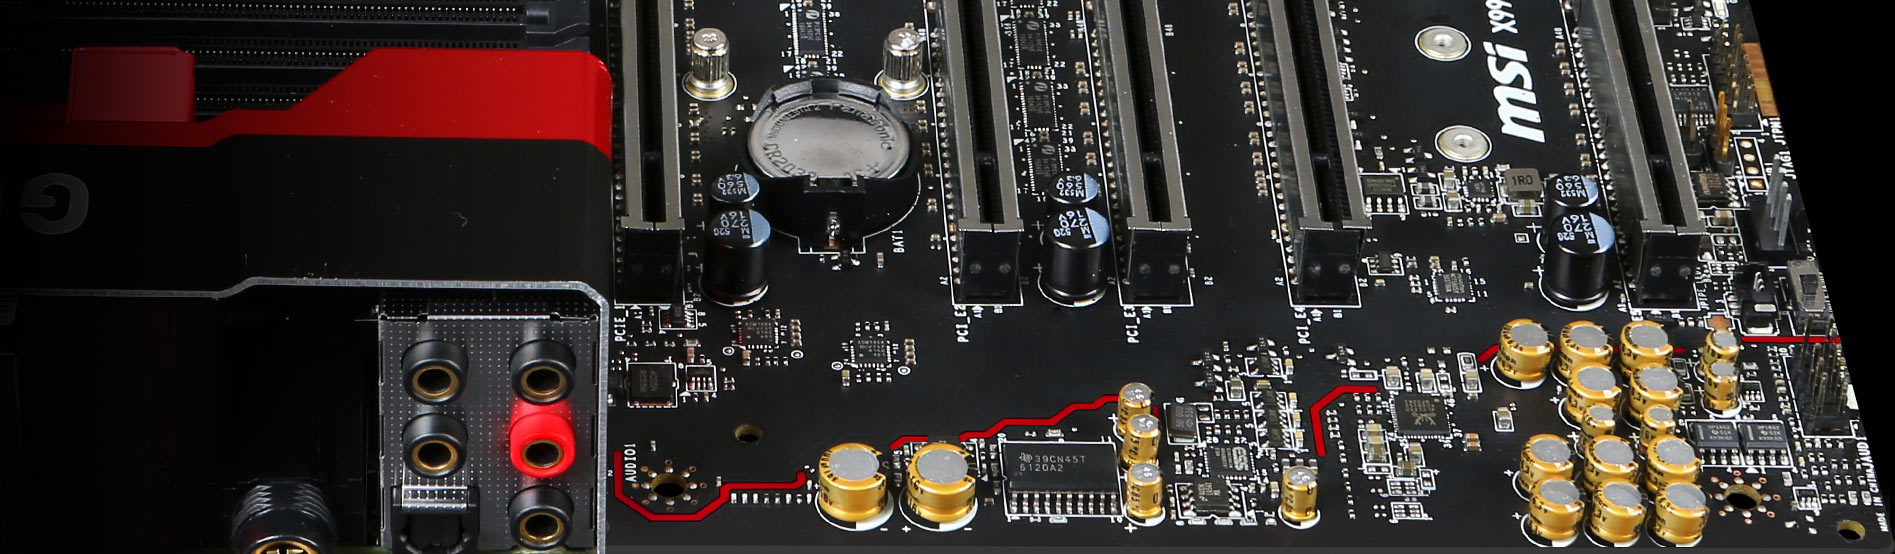 X99a Godlike Gaming Motherboard The World Leader In Stereo Plug Wiring Diagram Addition Headphone Jack 635mm Golden Dedicated Out With A Audio Connector